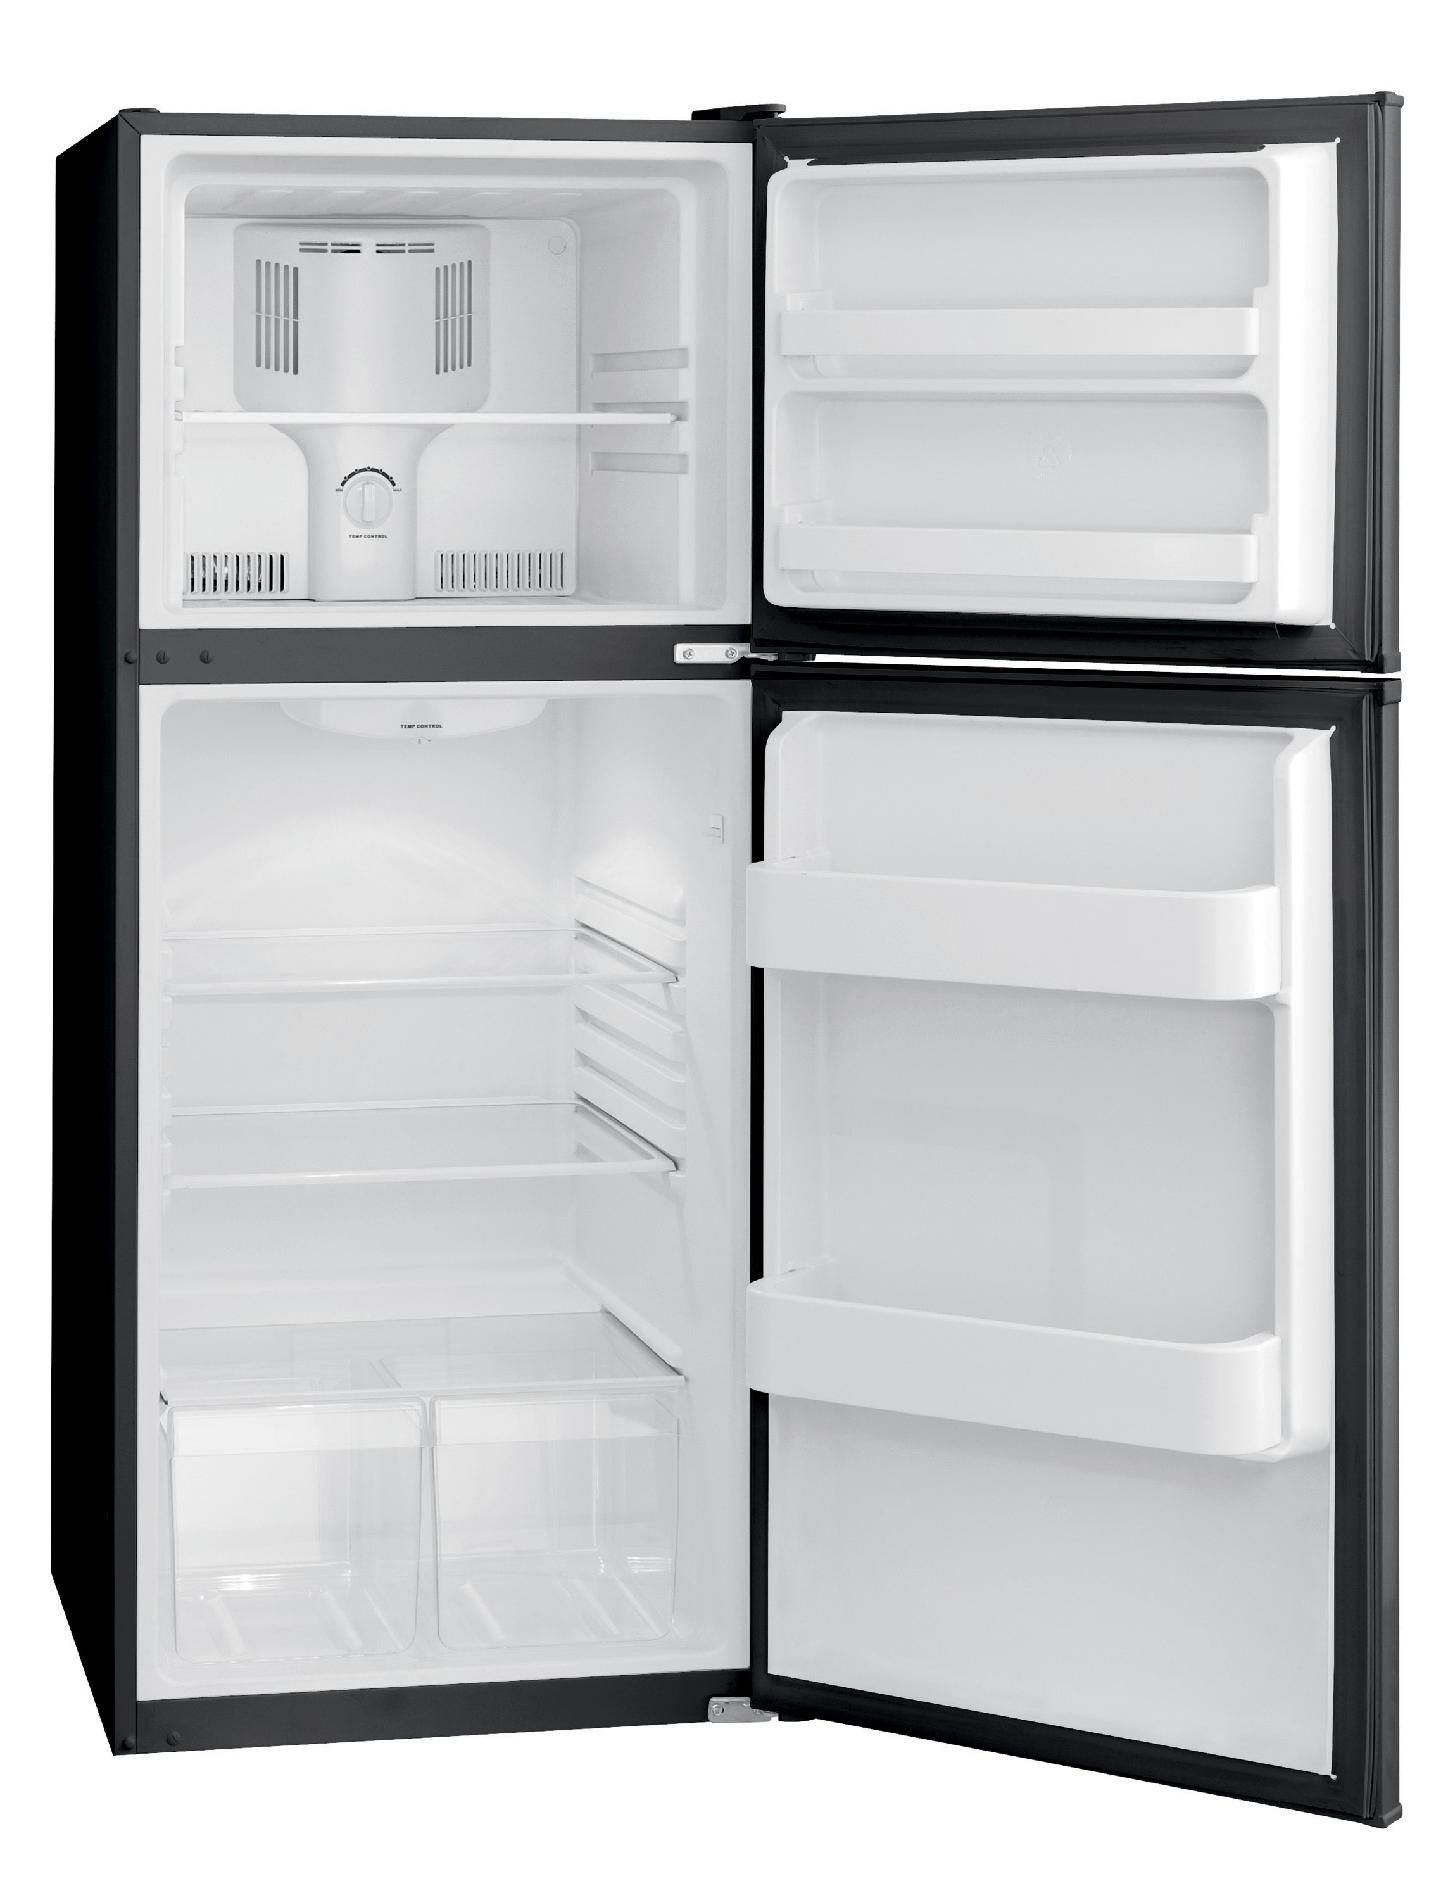 Frigidaire 10.0 cu. ft. Top-Freezer Refrigerator - Black